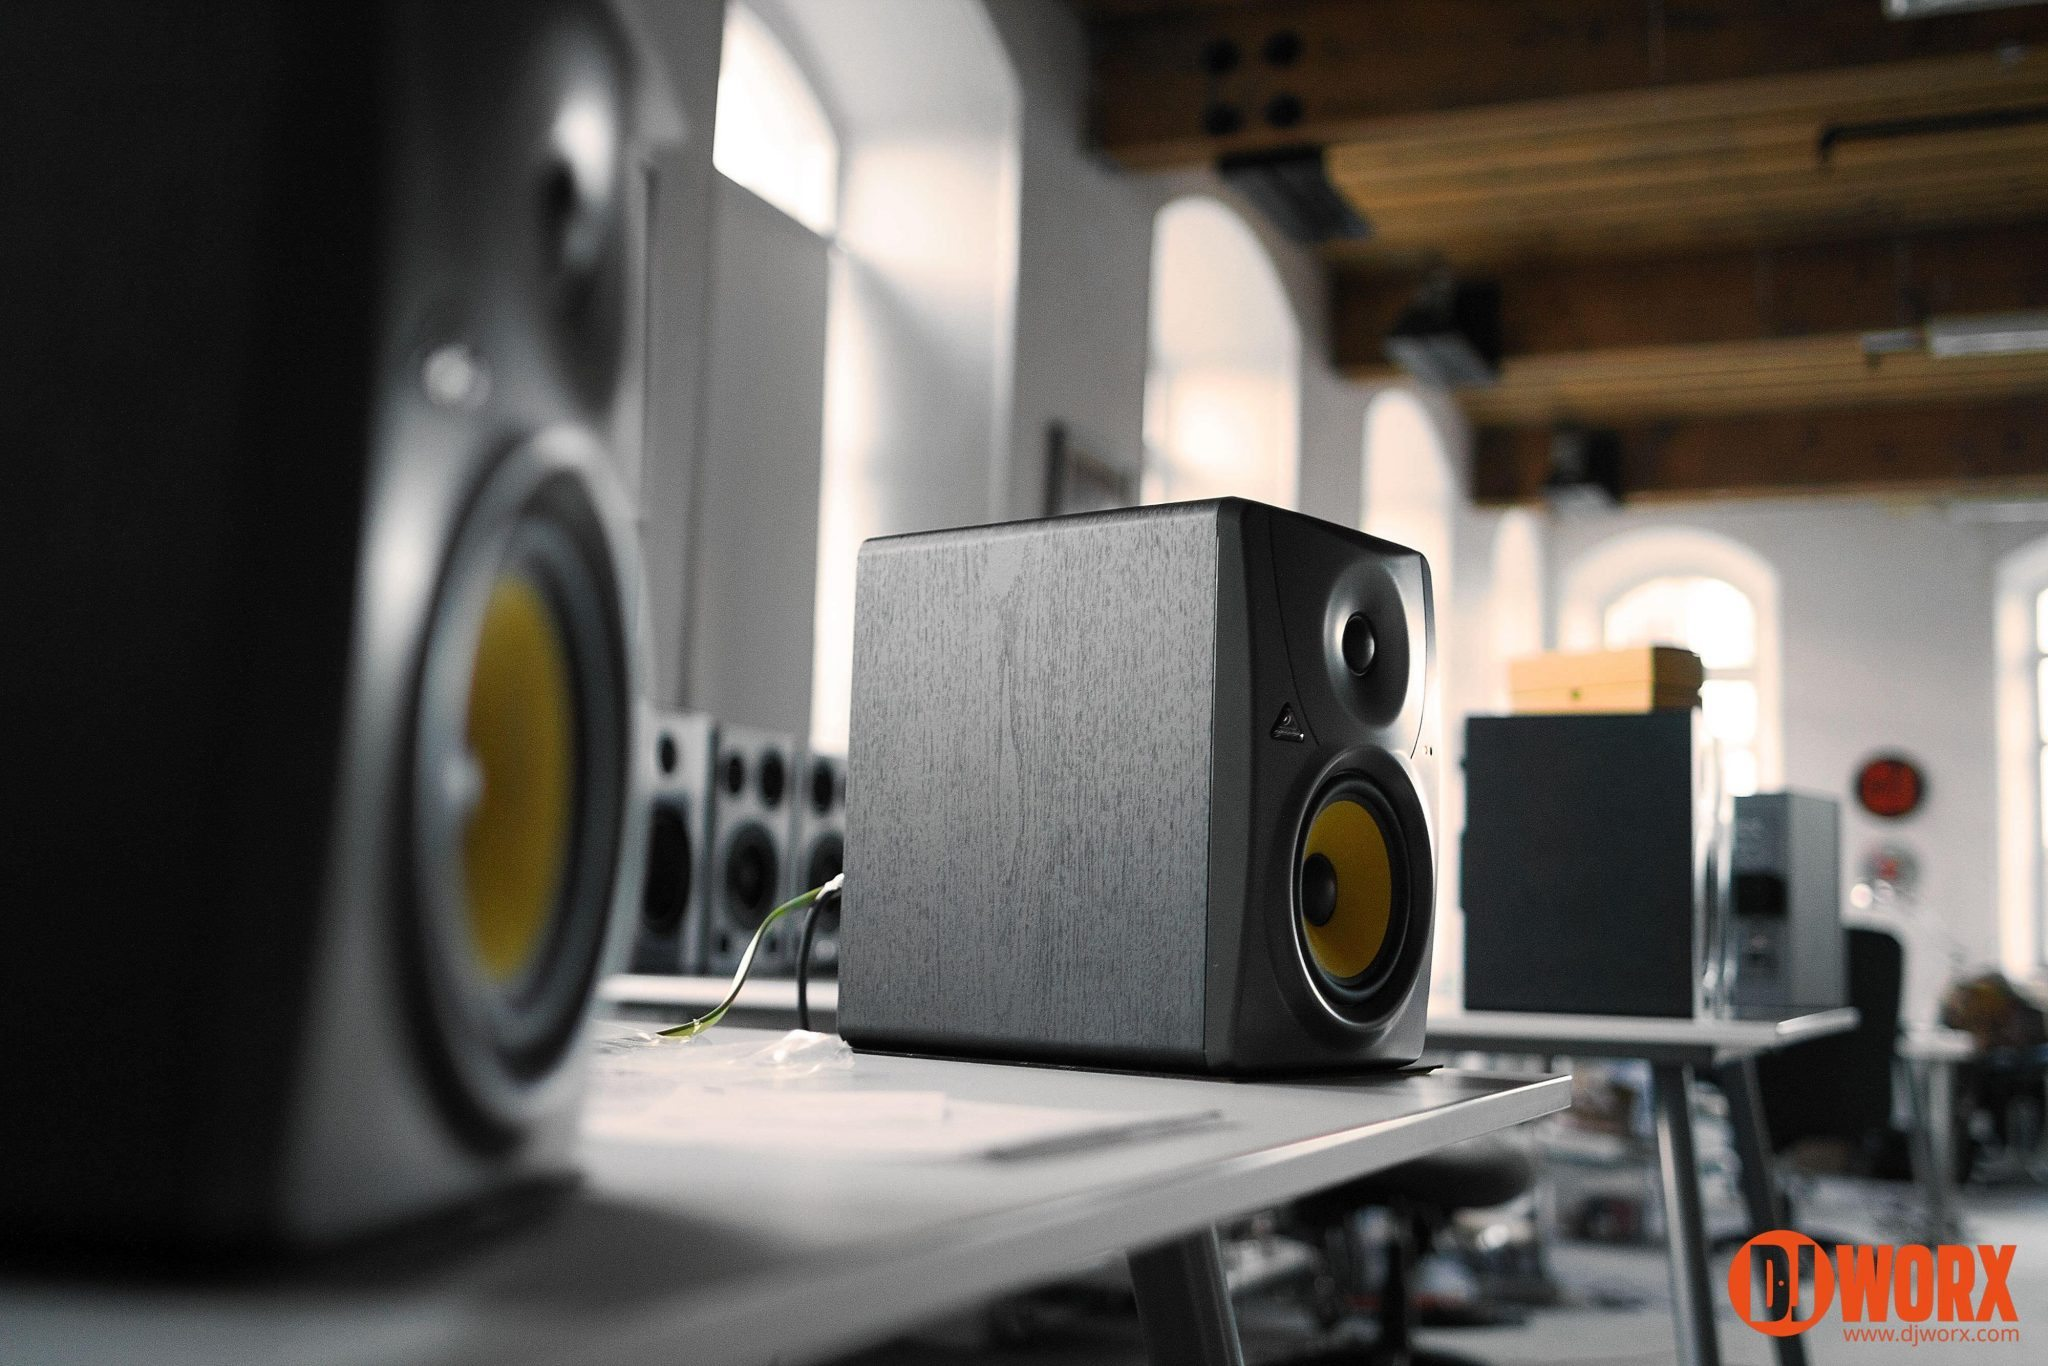 DJ entry level studio monitors group test (2)